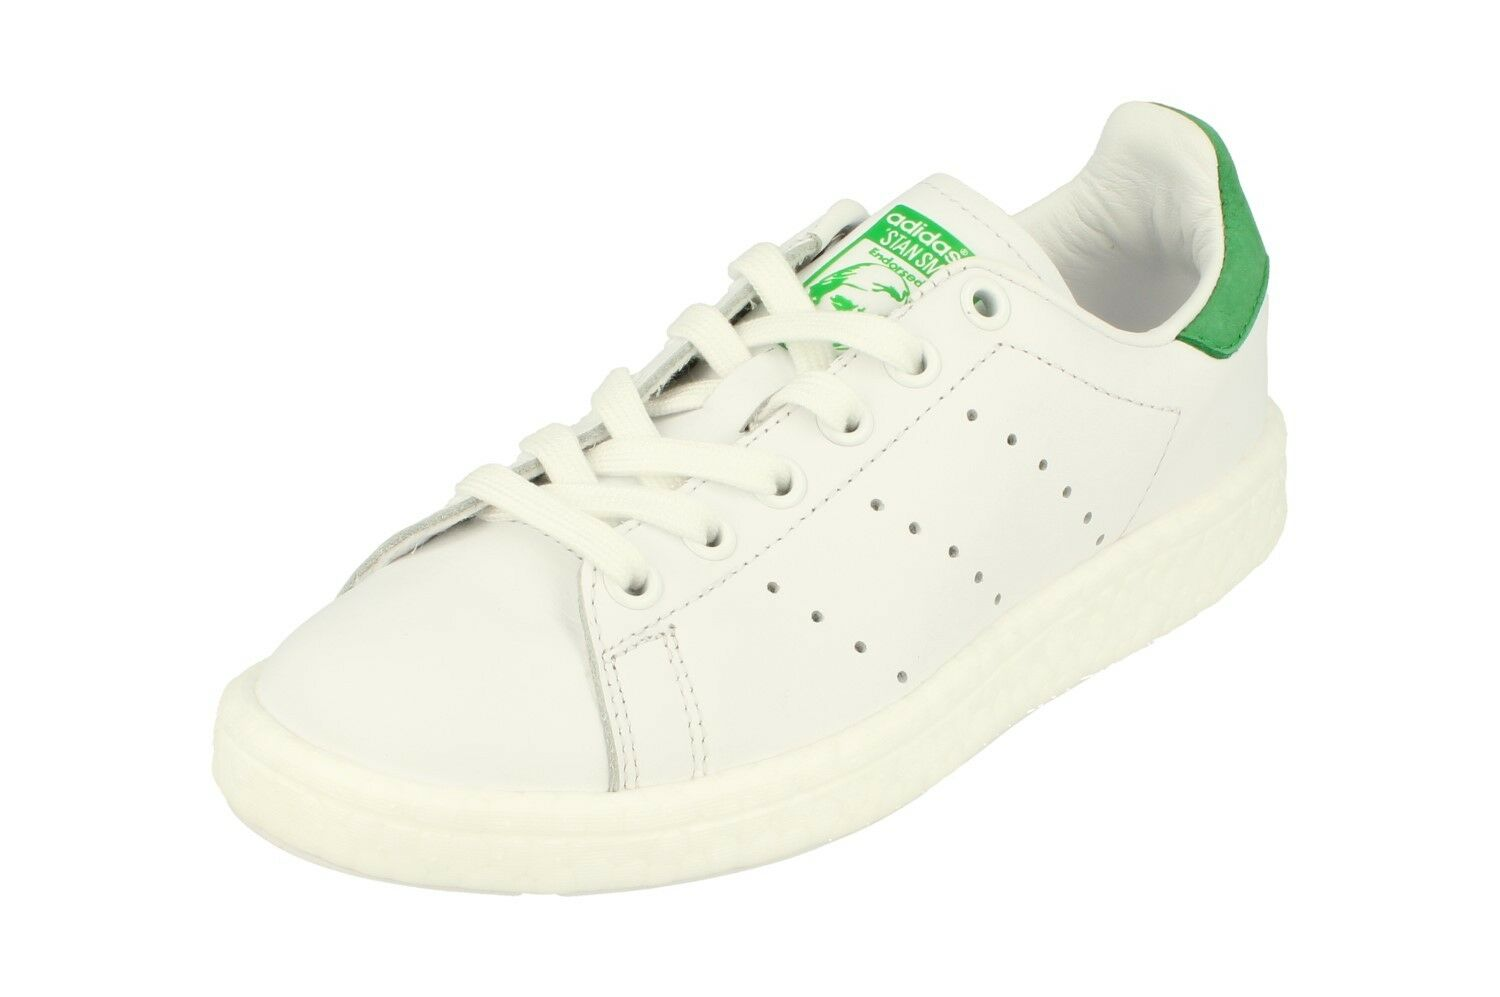 Adidas Hombre Originals Stan Smith Boost Hombre Adidas Running Trainers Sneakers BB0008 021ce8